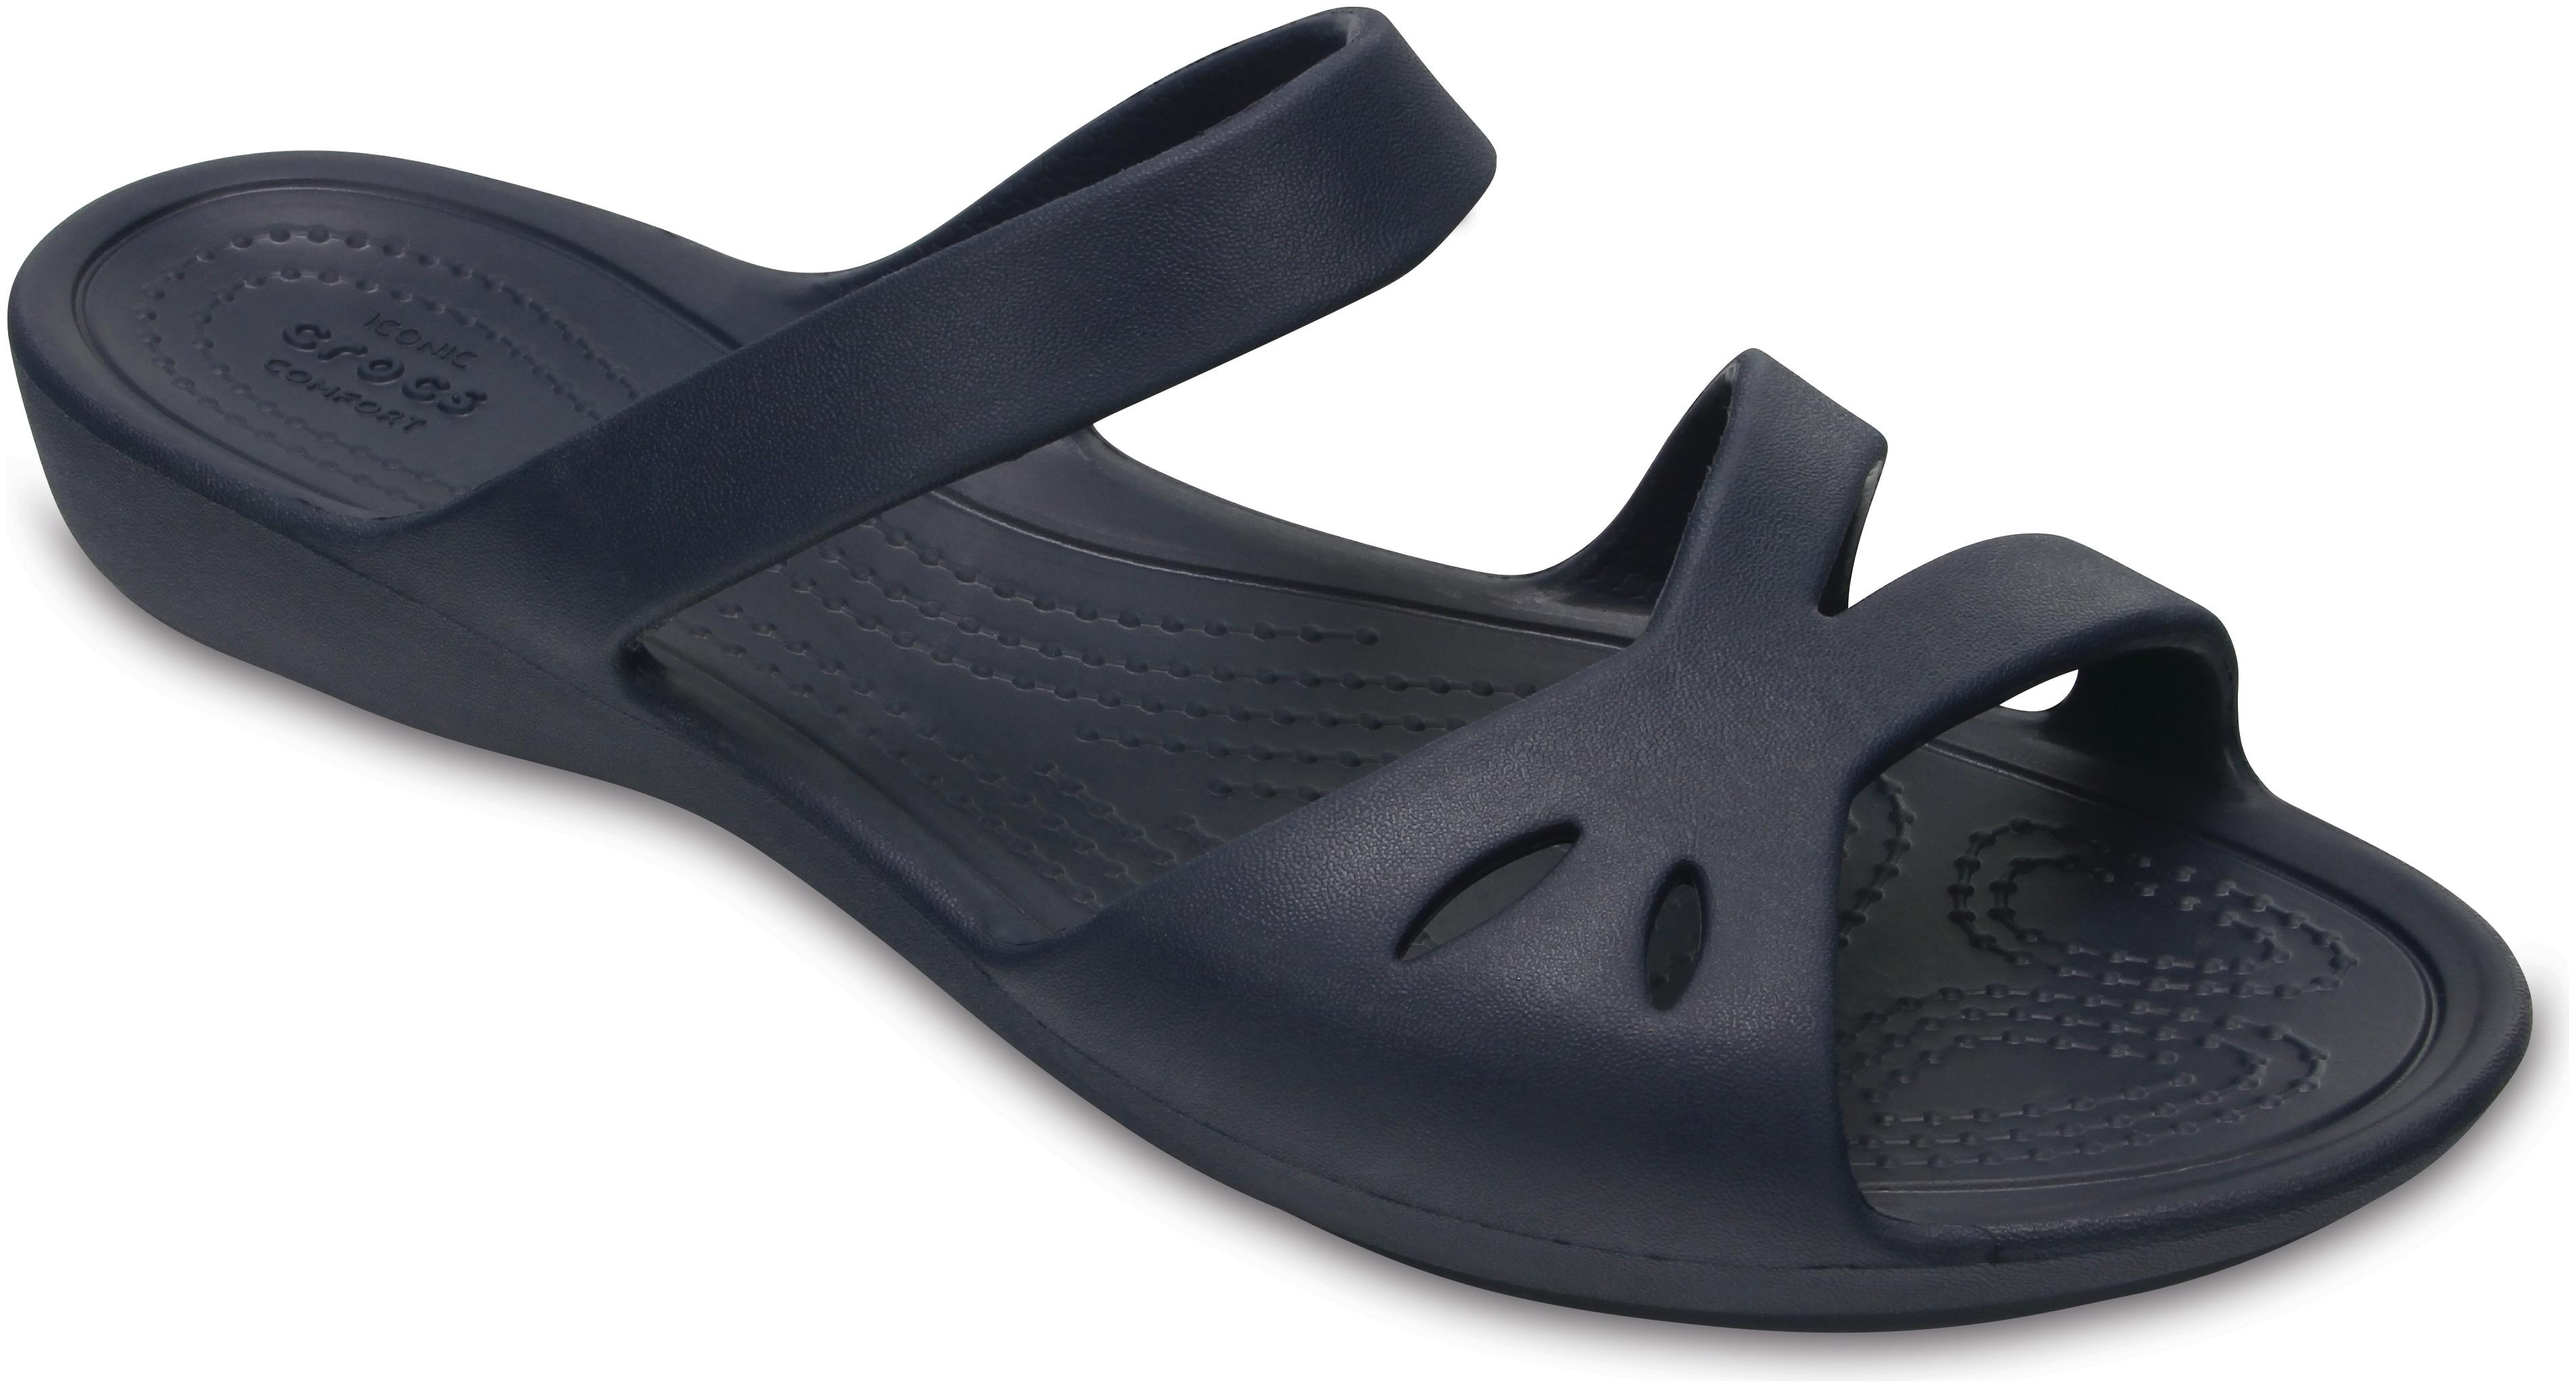 Crocs Navy Blue Sandals for women - Get stylish shoes for Every ... 8b2730290